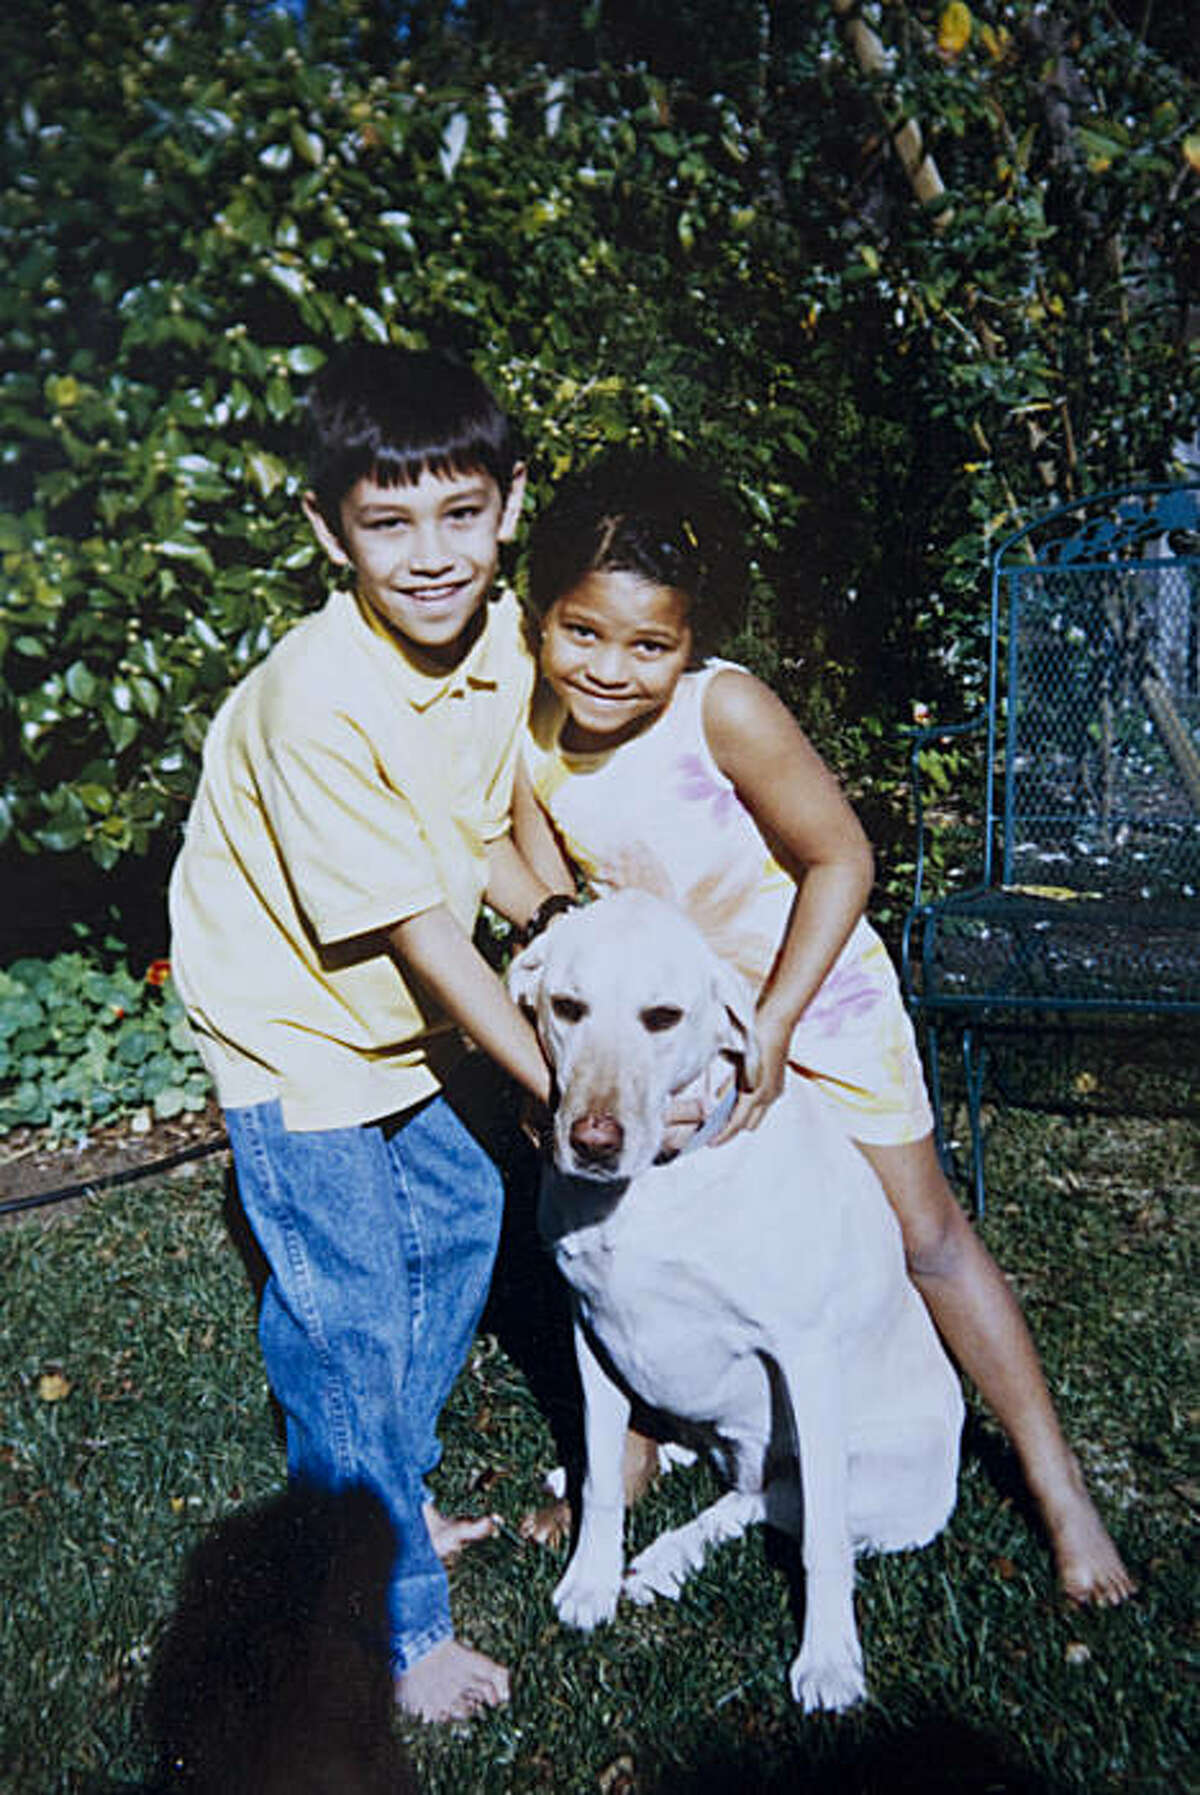 Matthew and Isabel Hallock are shown hugging their dog Gloria in a photo at their famiy home in Oakland, Calif., on Thursday, September 30, 2010. Gloria, an 11-year-old Labrador Retriever, was shot and killed on Tuesday by Oakland police who were responding to a burglar alarm at the house.